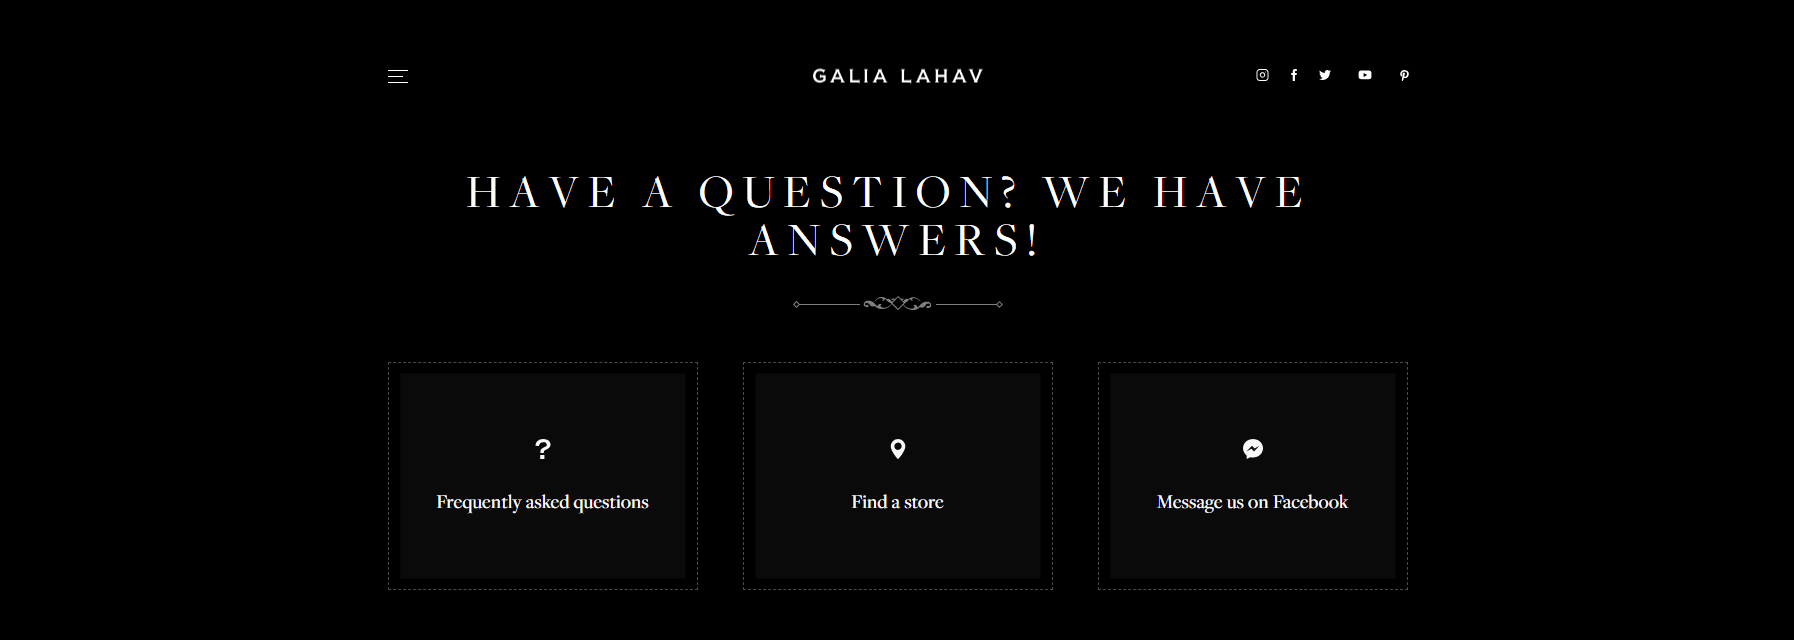 galis lahav top of the contact us page